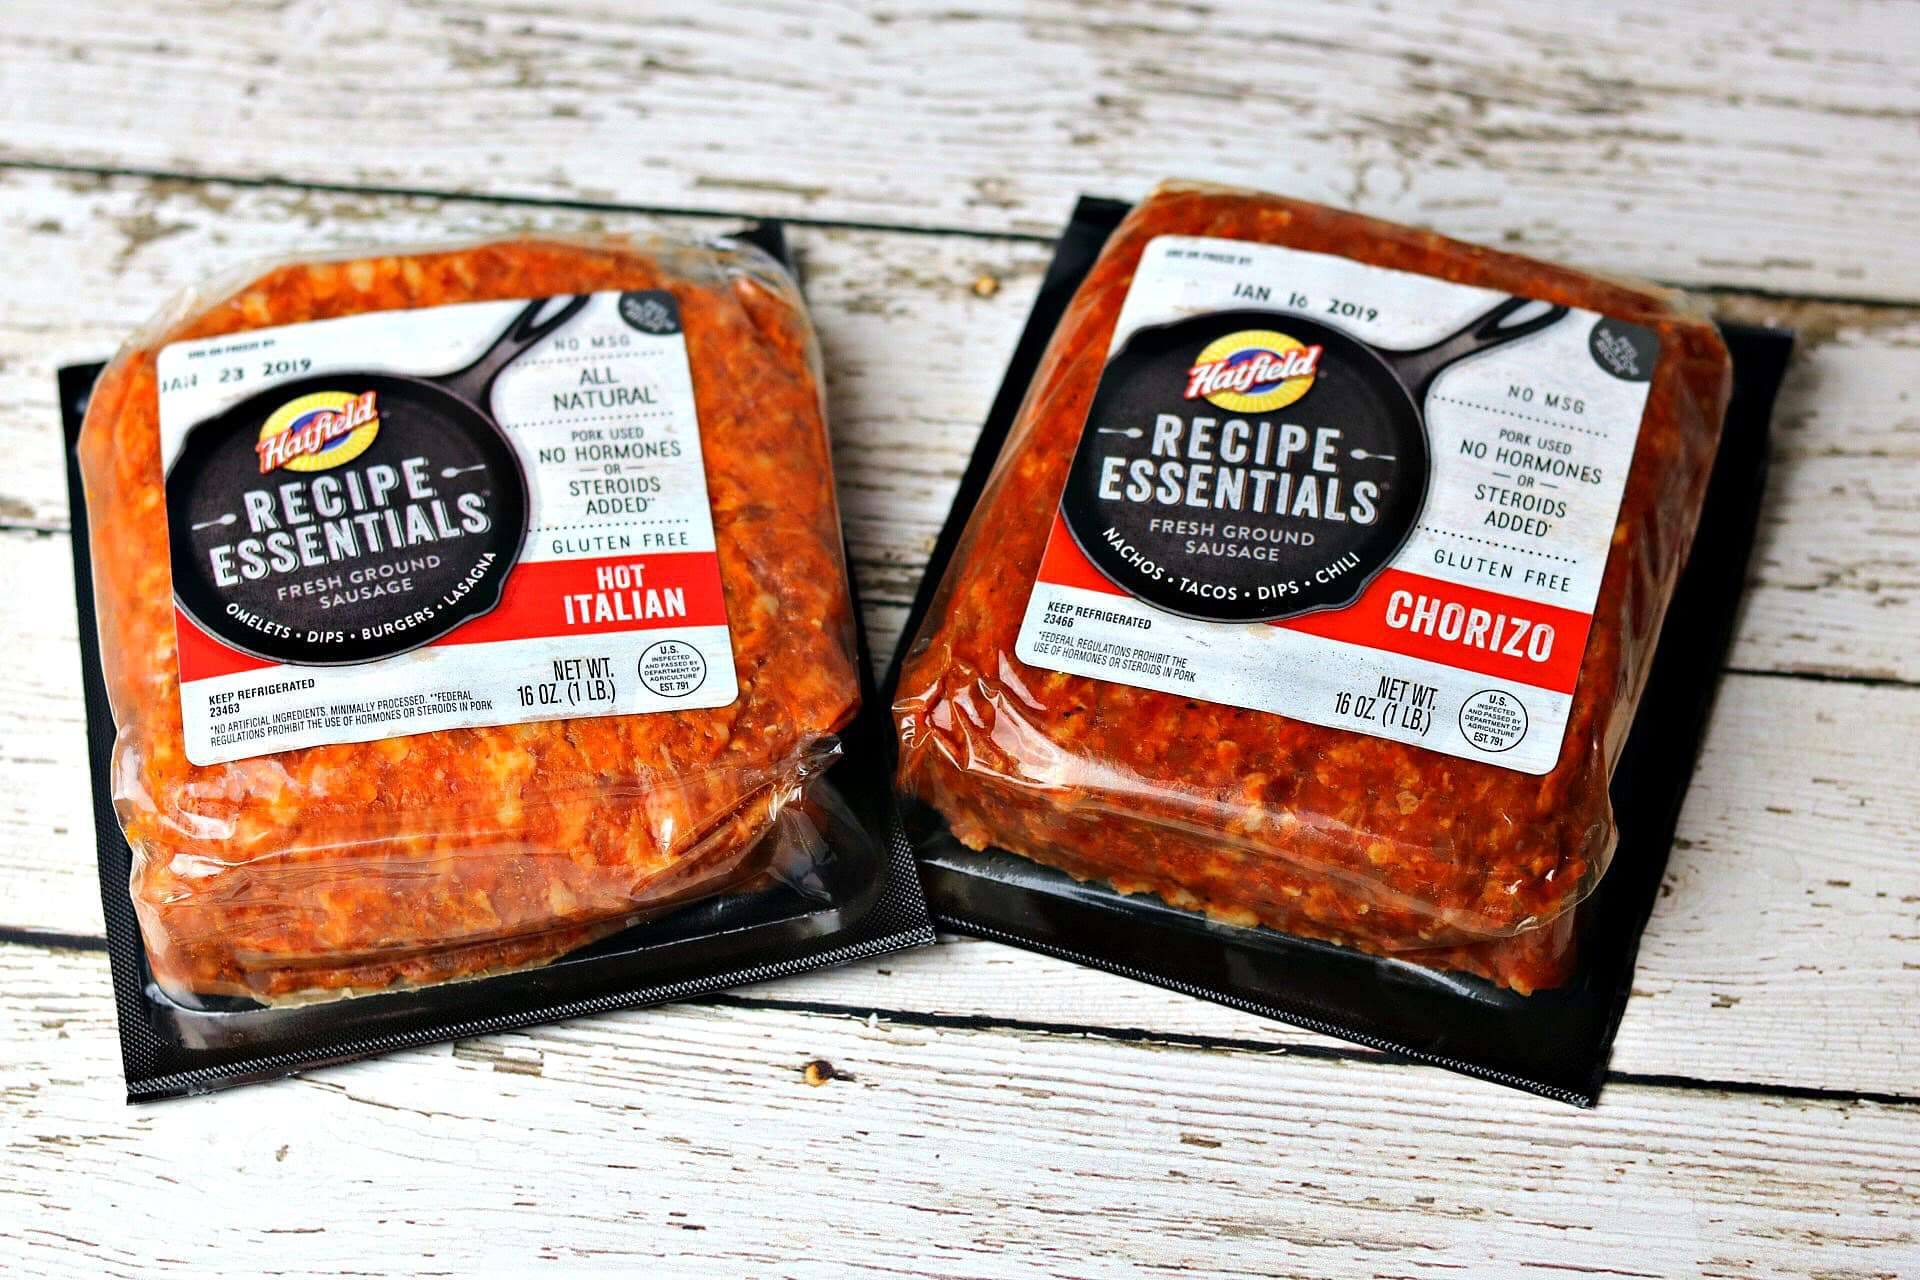 two packages of Hatfield recipe essentials chorizo